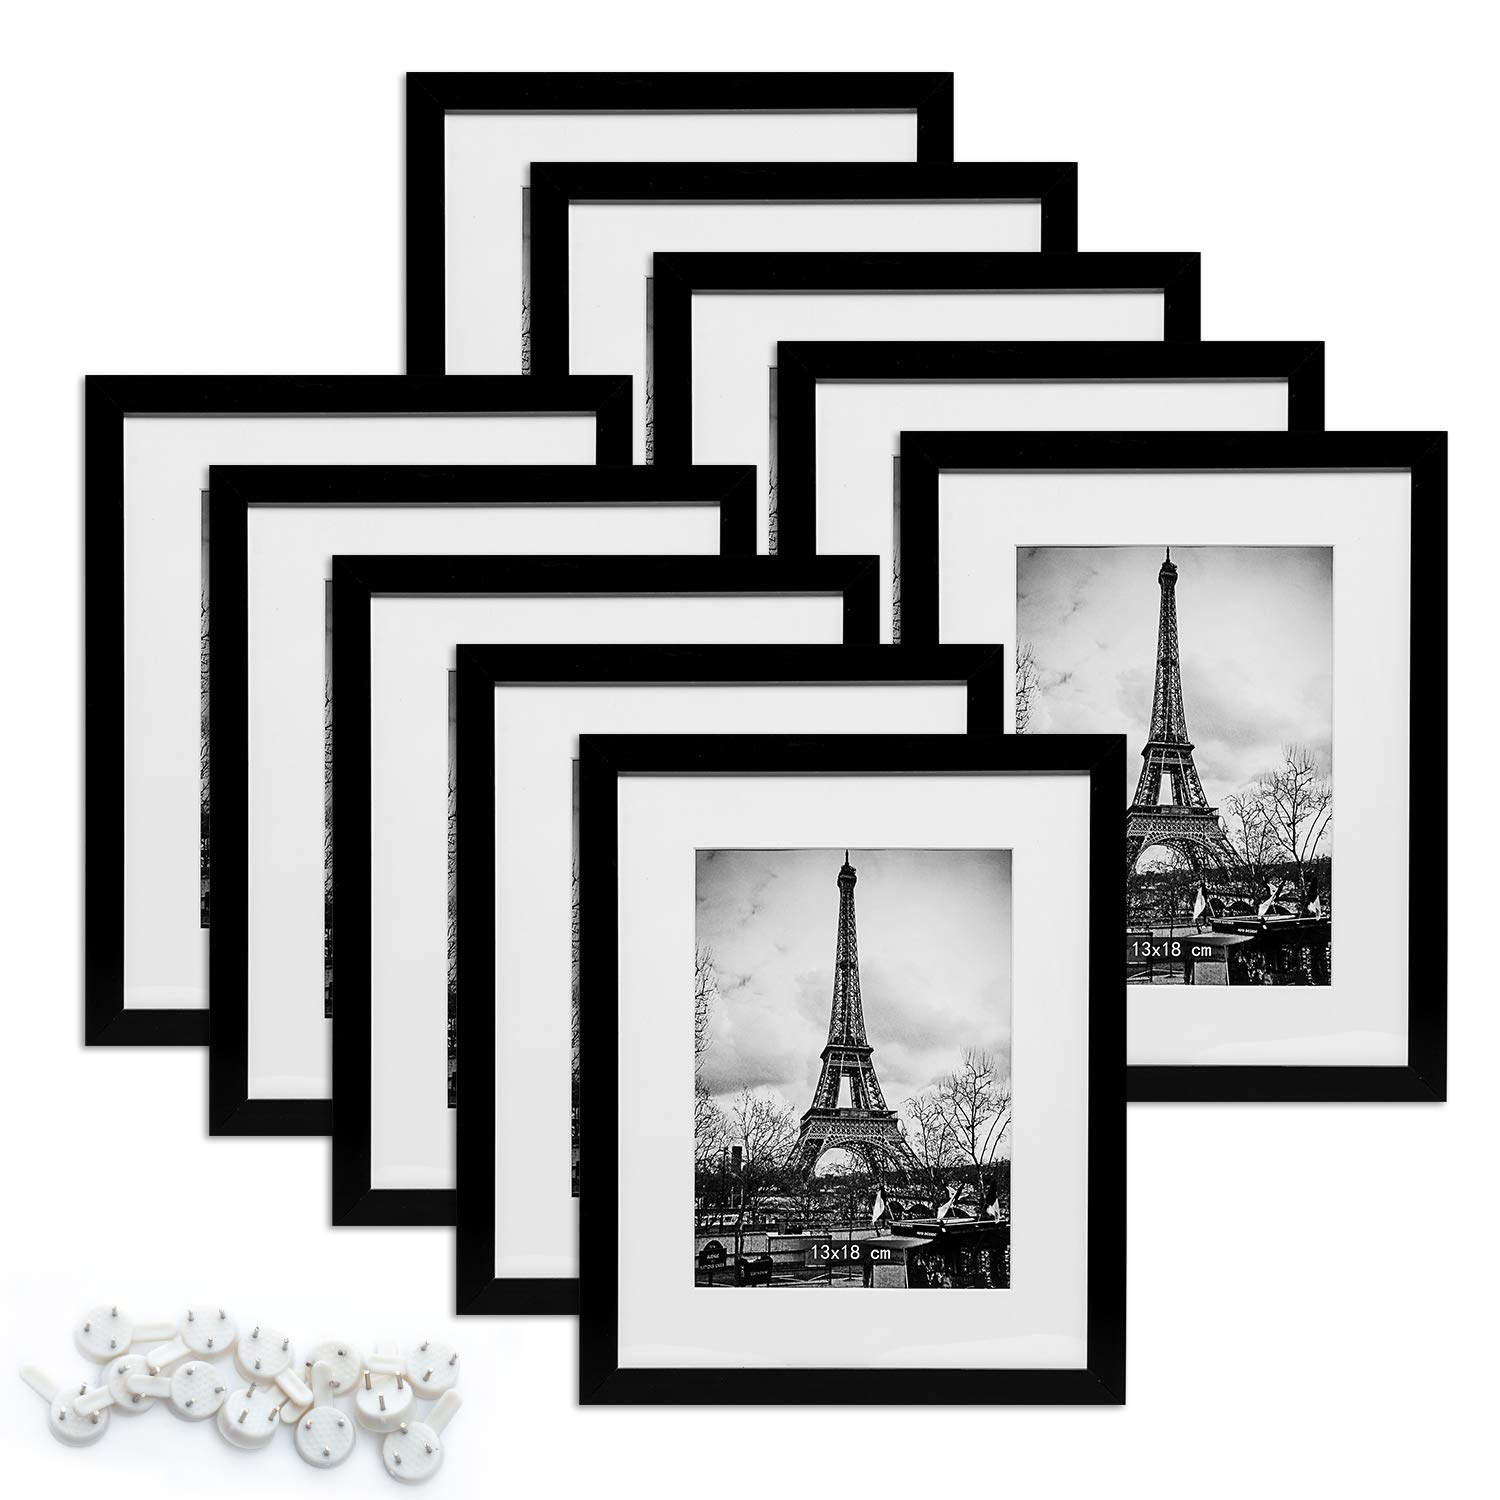 upsimples 8x10 Picture Frame with Mat Set of 10,Black Picture Frames for Wall or Tabletop Display,Gallery Wall Frame Collage by upsimples (Image #1)